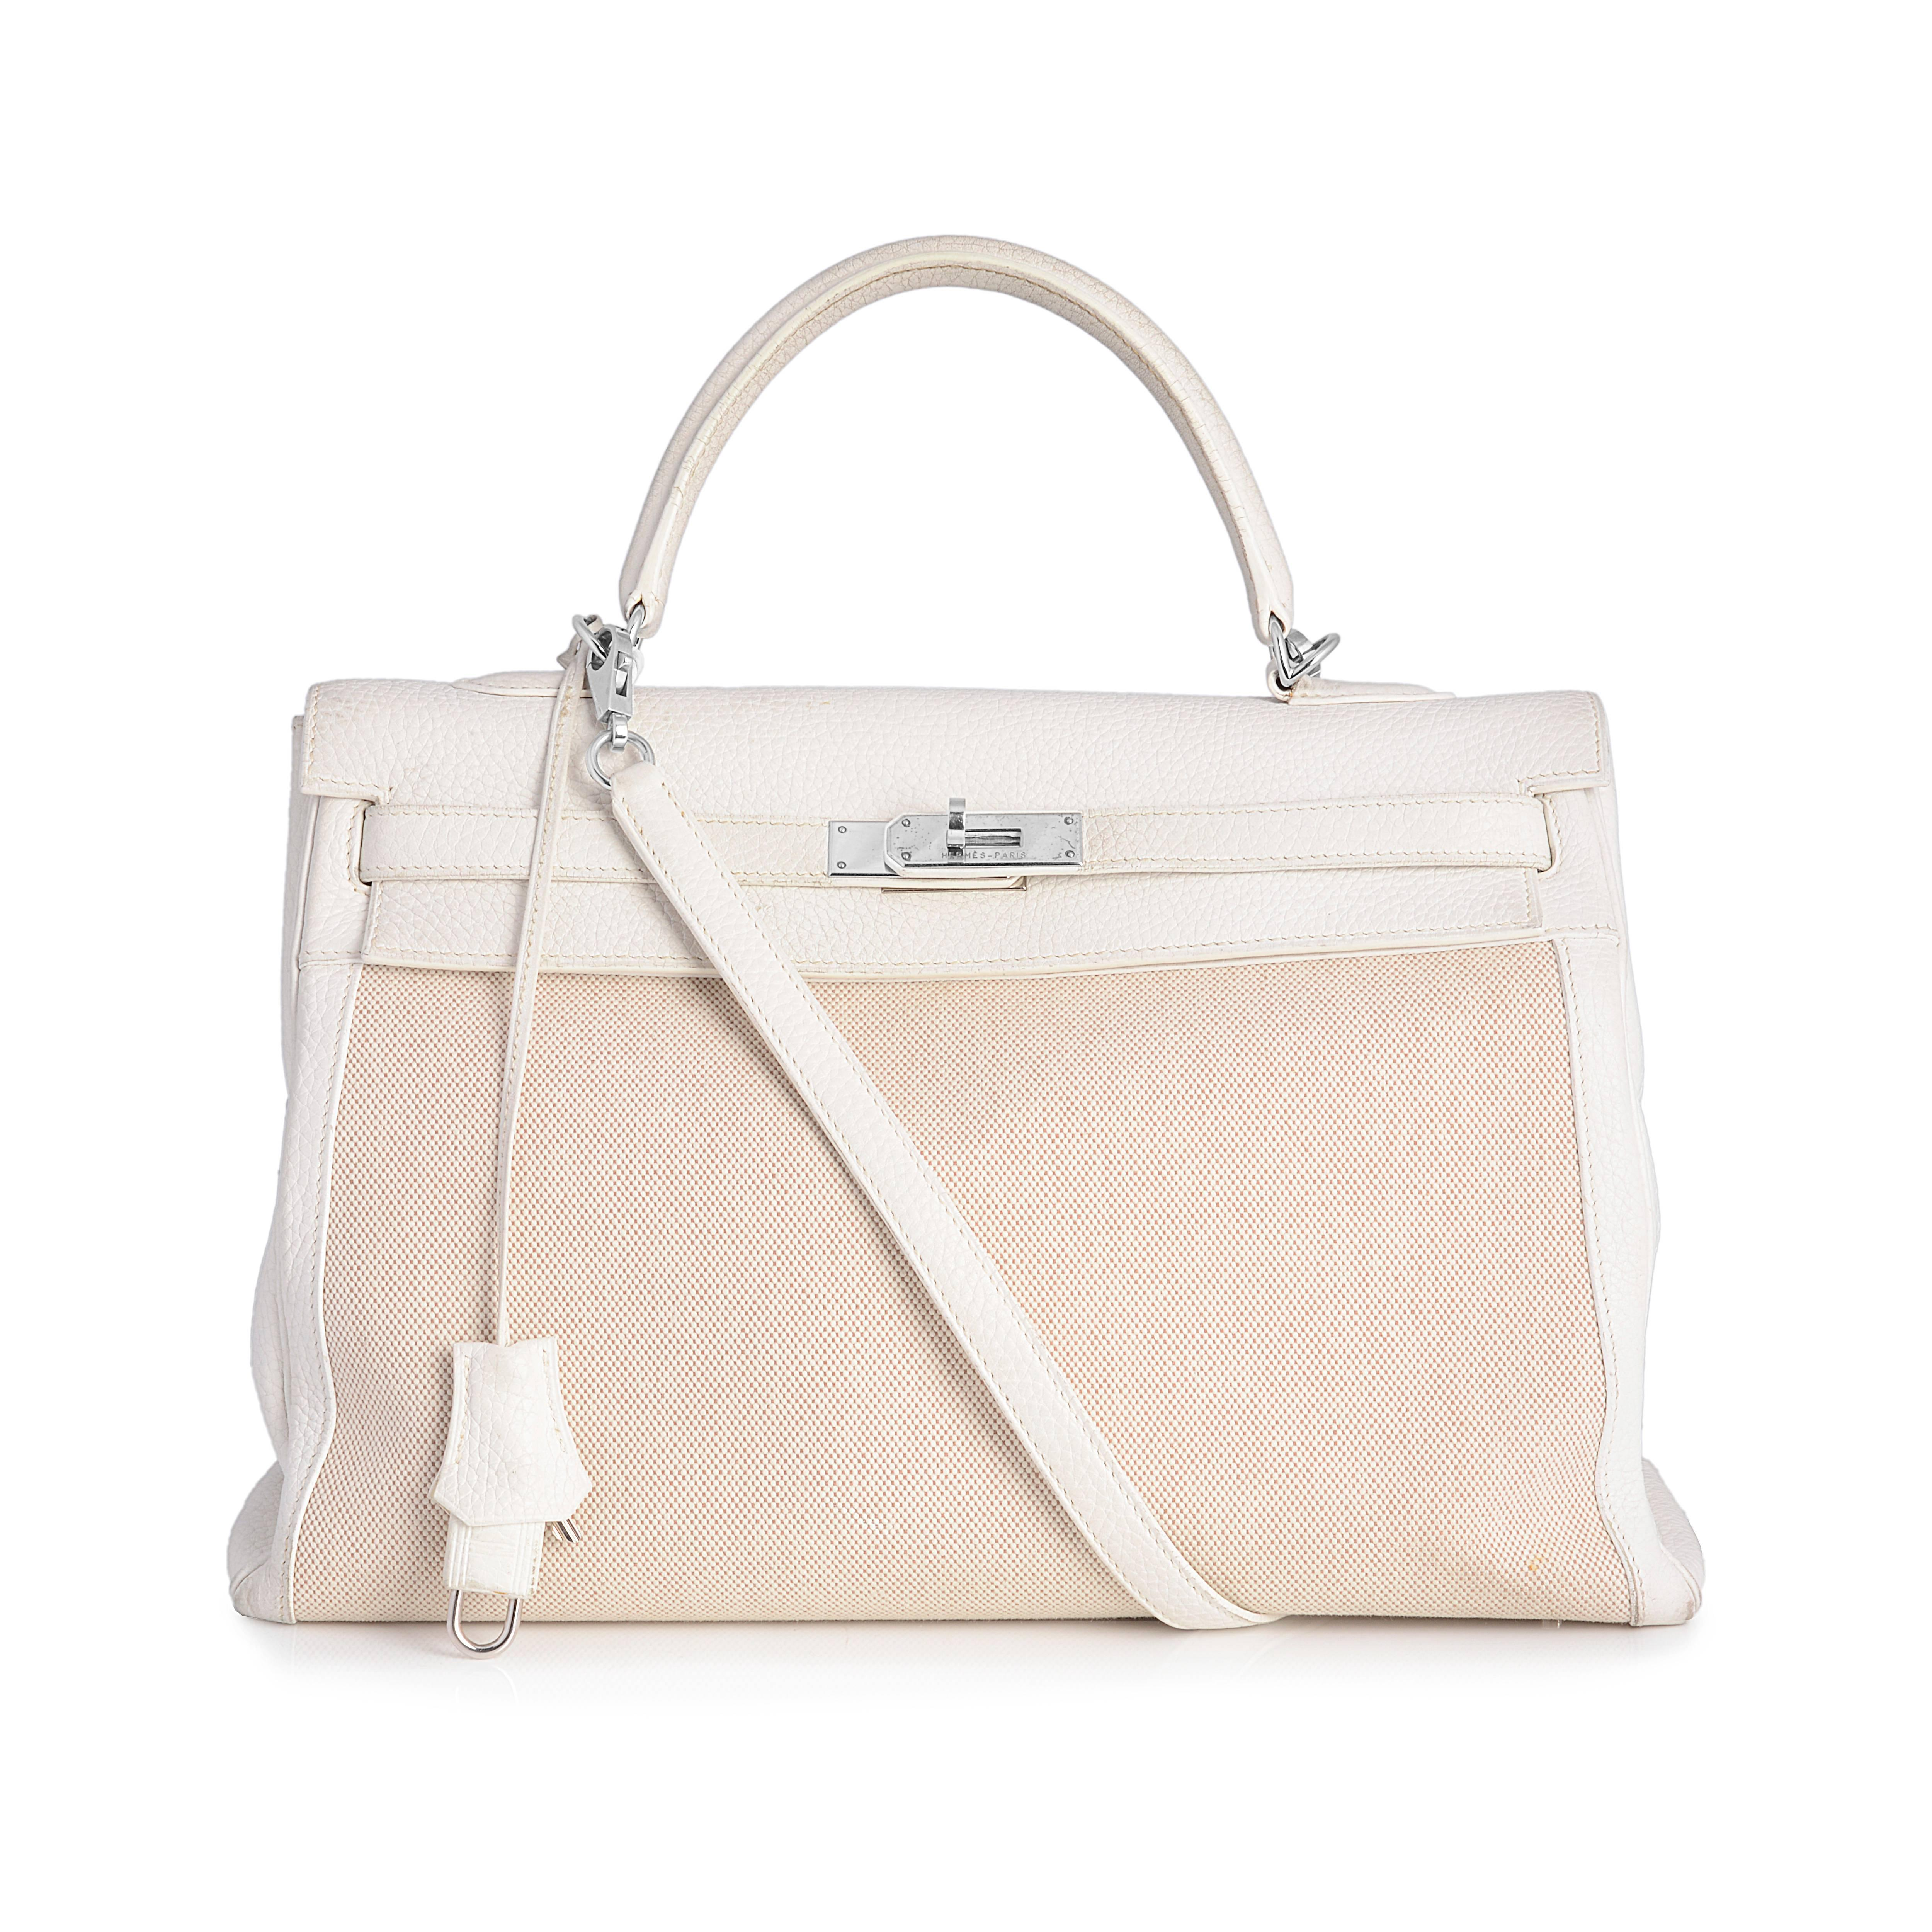 7df183569634 Hermes Kelly 35 Toile and Leather Bag at 1stdibs